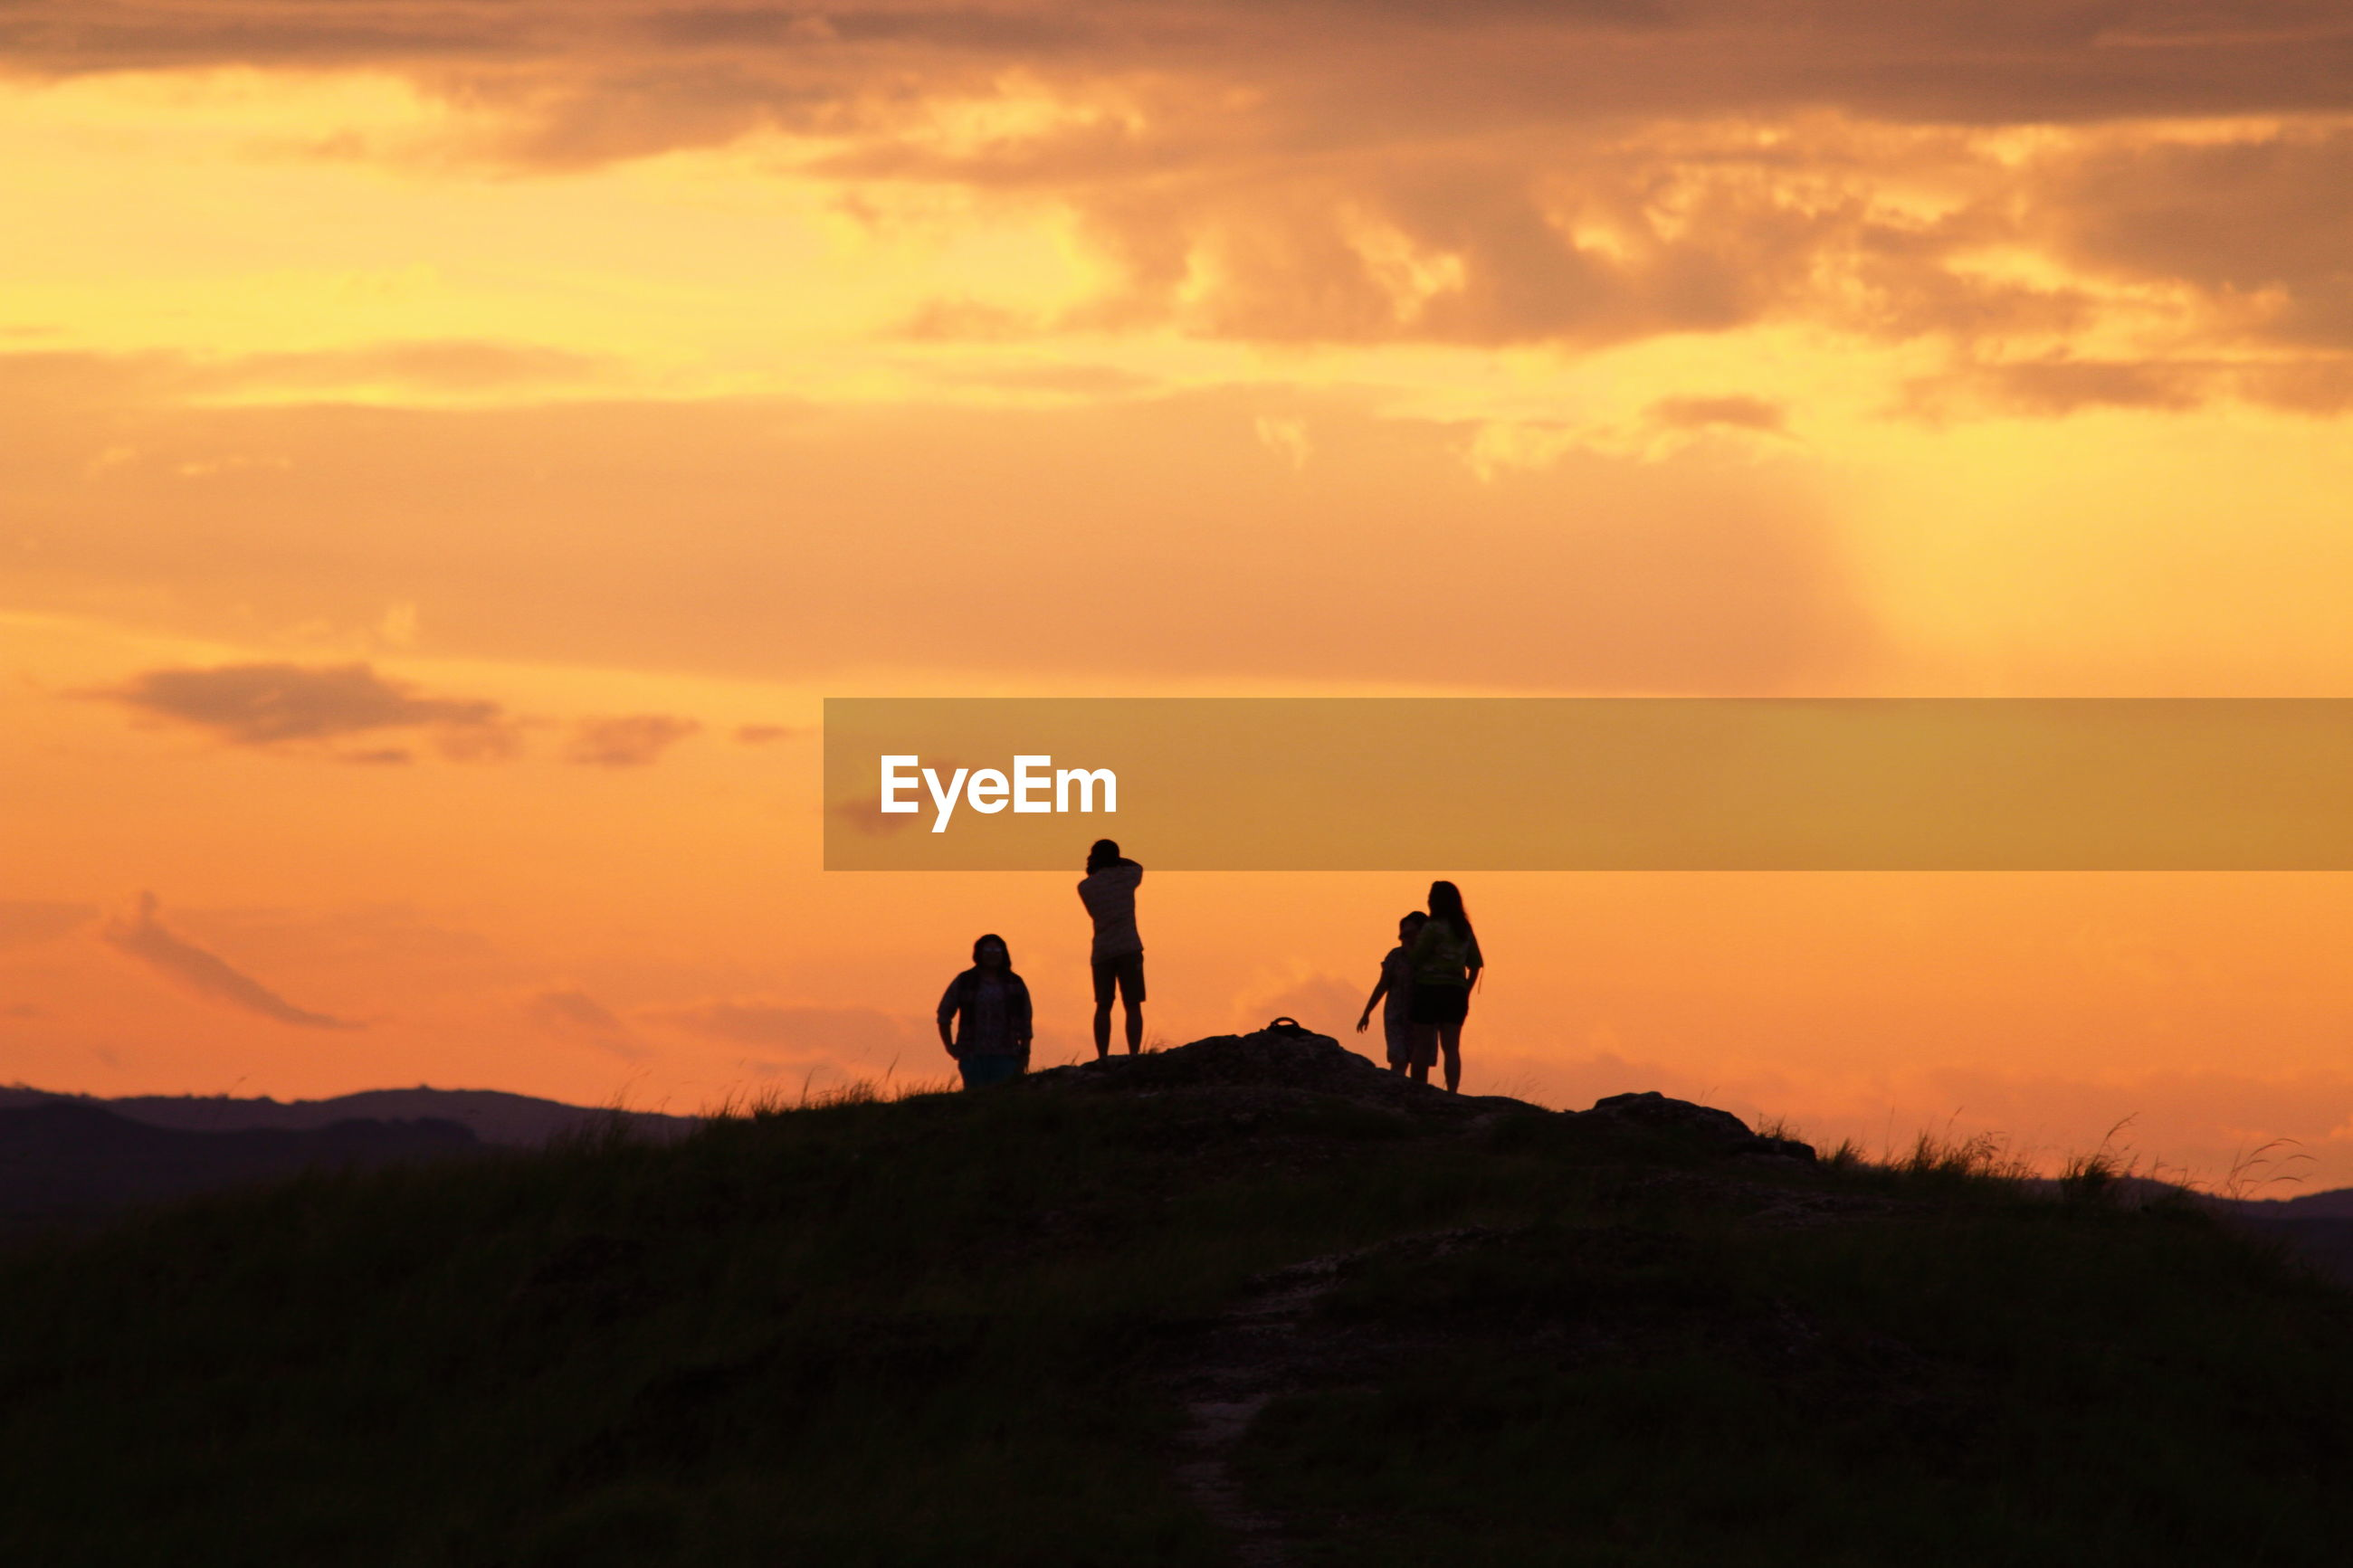 Silhouette people standing on mountain against orange sky